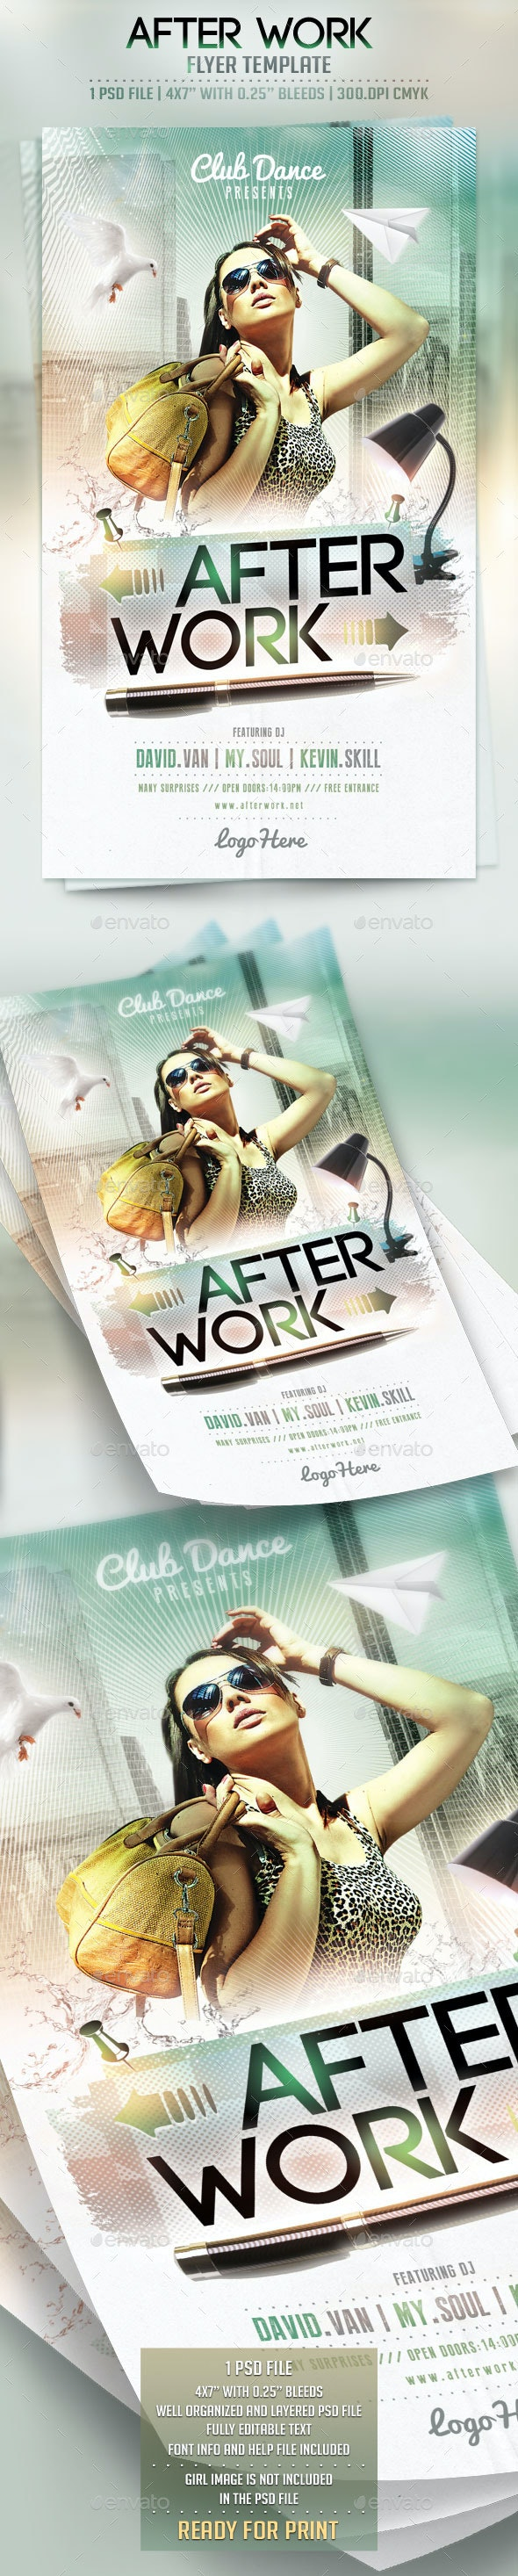 After Work Flyer Template - Clubs & Parties Events